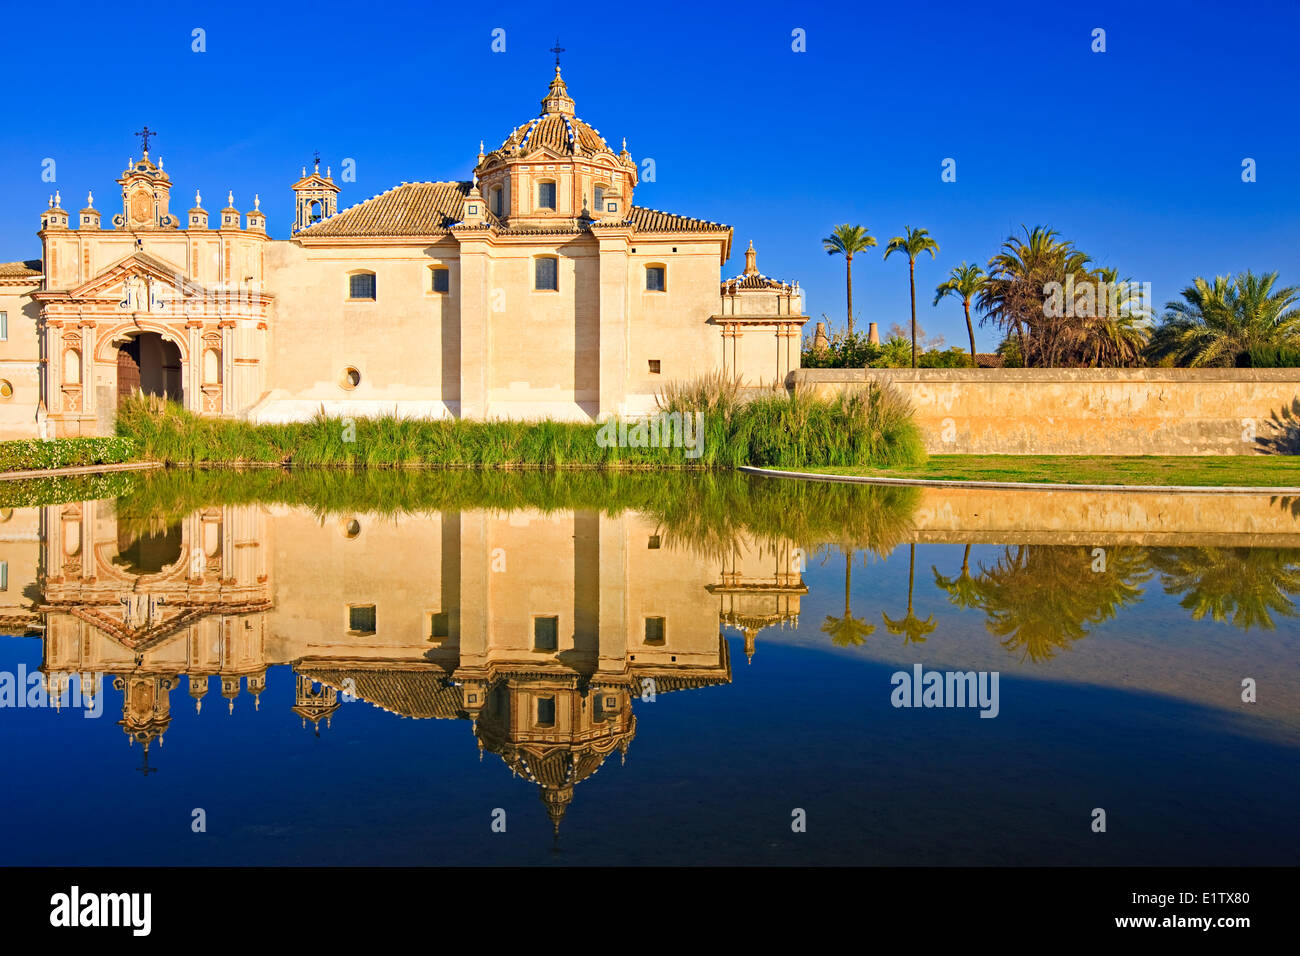 Reflections on a pond in the Jardin de la Cartuja the Monasterio de Santa Maria de las Cuevas Monastery Santa Maria - Stock Image